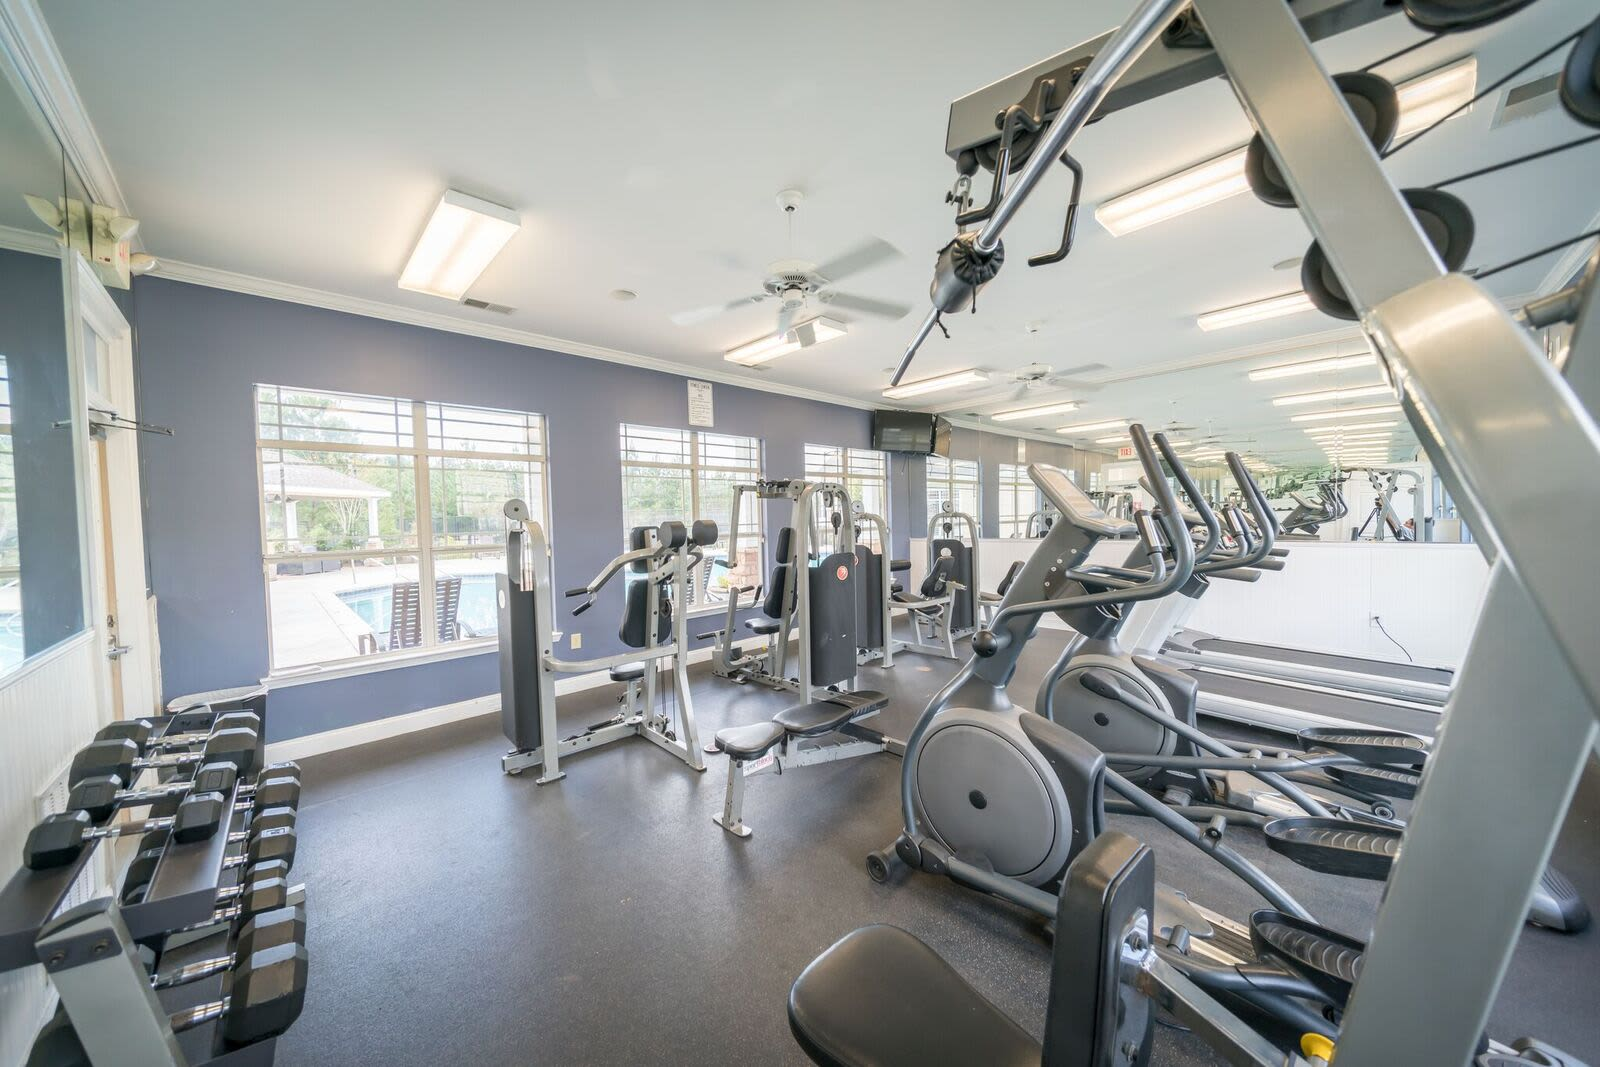 Haddon Place offers a modern fitness center in McDonough, Georgia